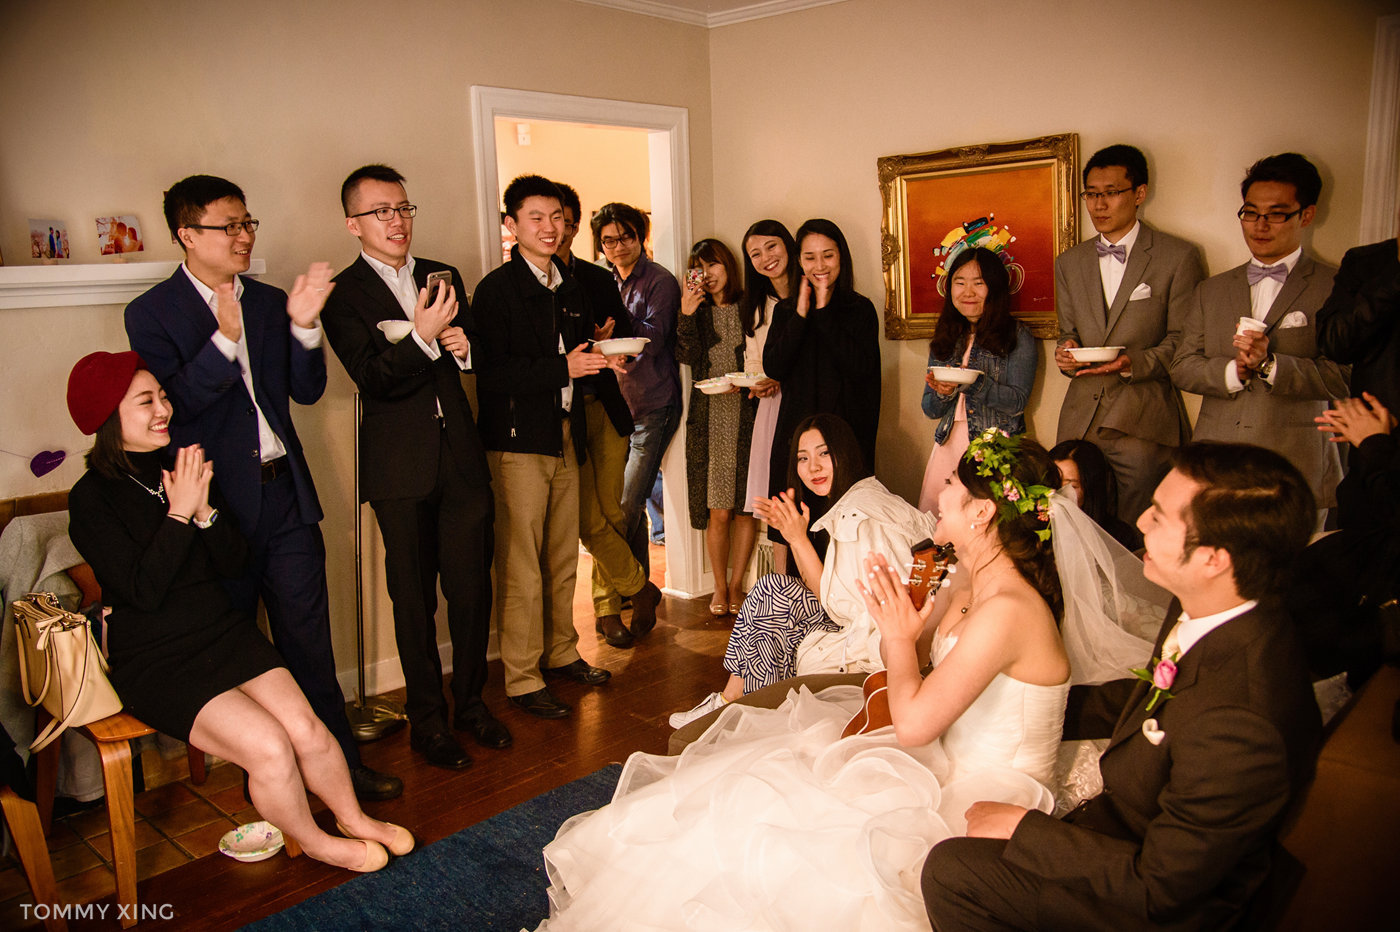 Seattle Wedding and pre wedding Los Angeles Tommy Xing Photography 西雅图洛杉矶旧金山婚礼婚纱照摄影师 153.jpg